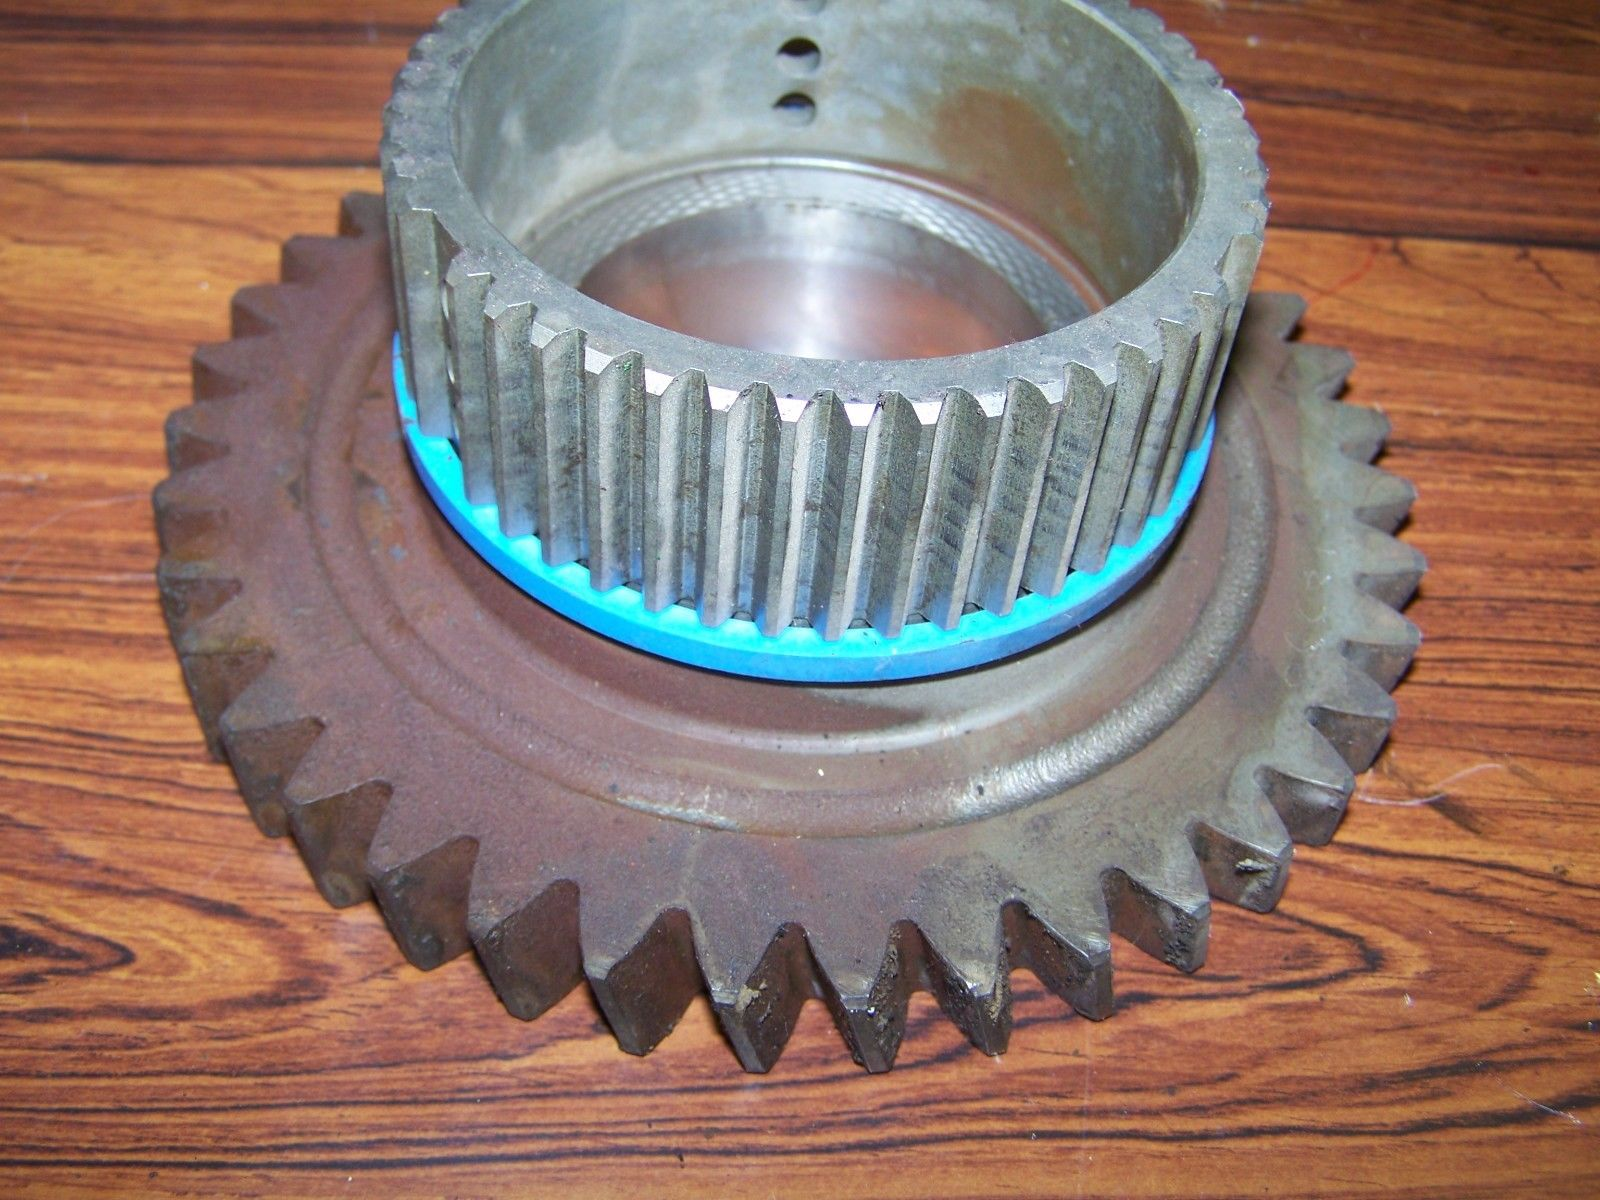 Case IH Pinion Gear 1285987C1, Driven & Reverse wi 39T & 45S For 7110 7120 7130+